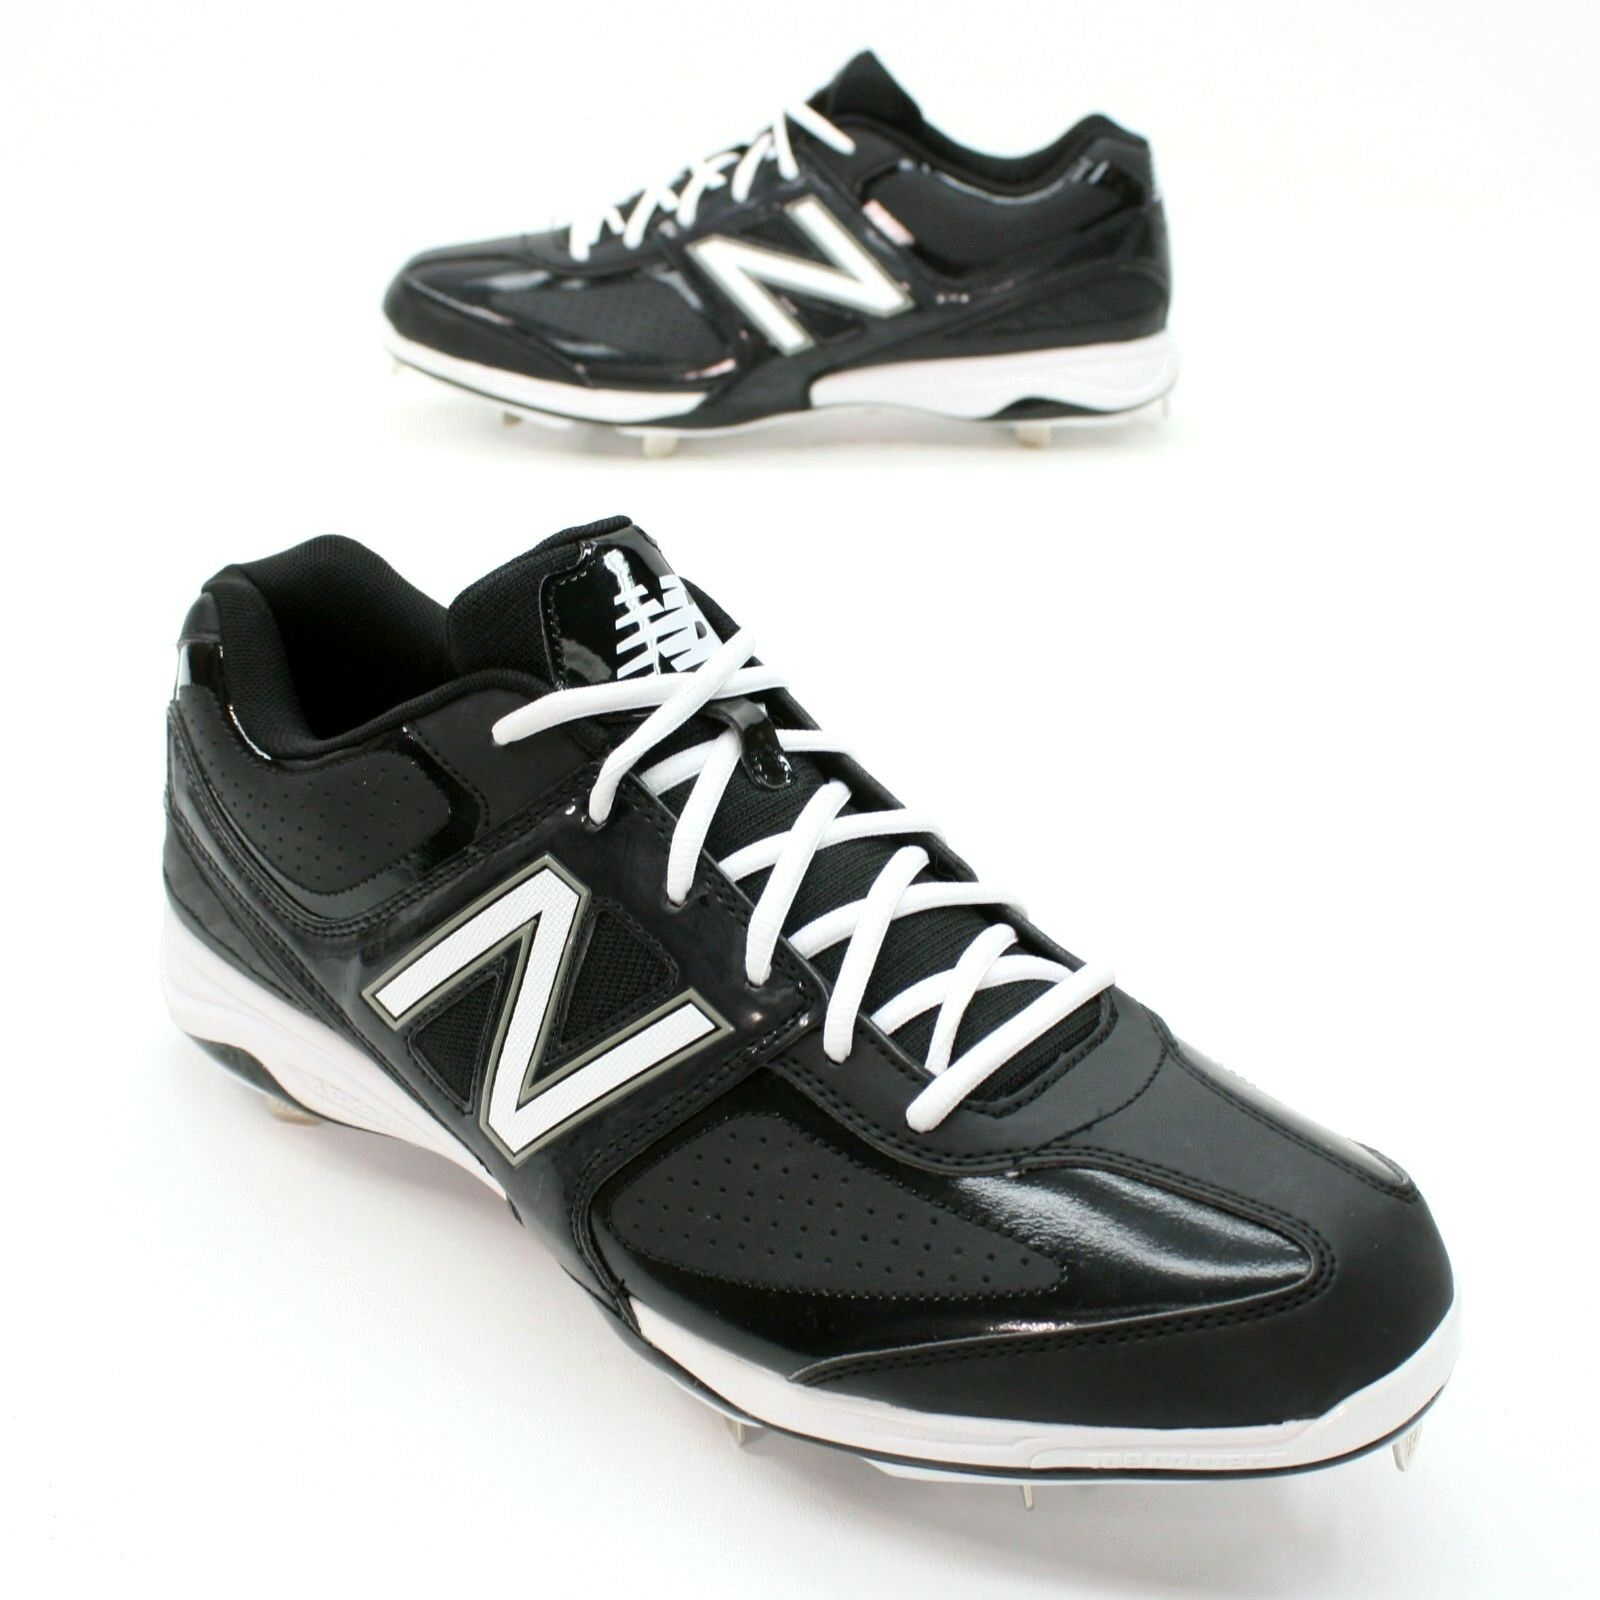 sale retailer 99f5b c4040 New Balance Men s Men s Men s 16 Black White Lo Baseball Softball Metal  Cleats Shoes Mint